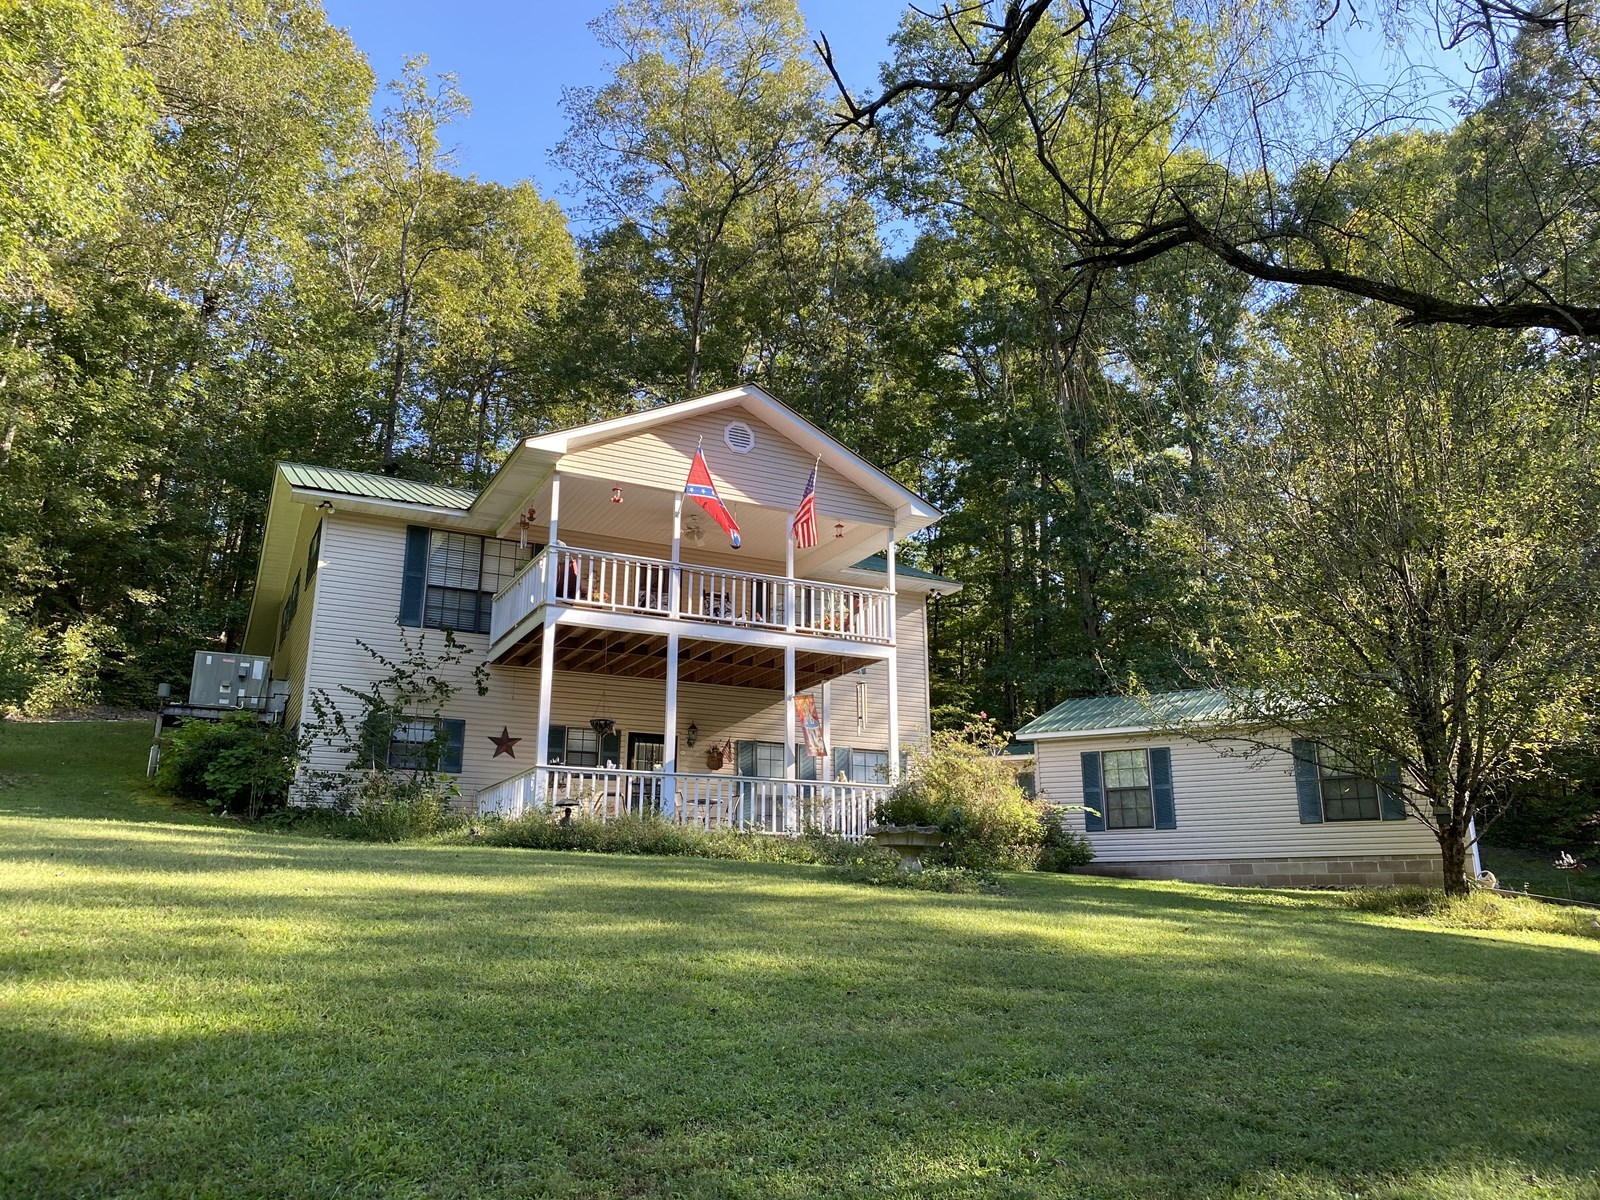 COUNTRY HOME FOR SALE IN TN, SPRINGS, GARDEN SPOT, WORKSHOP